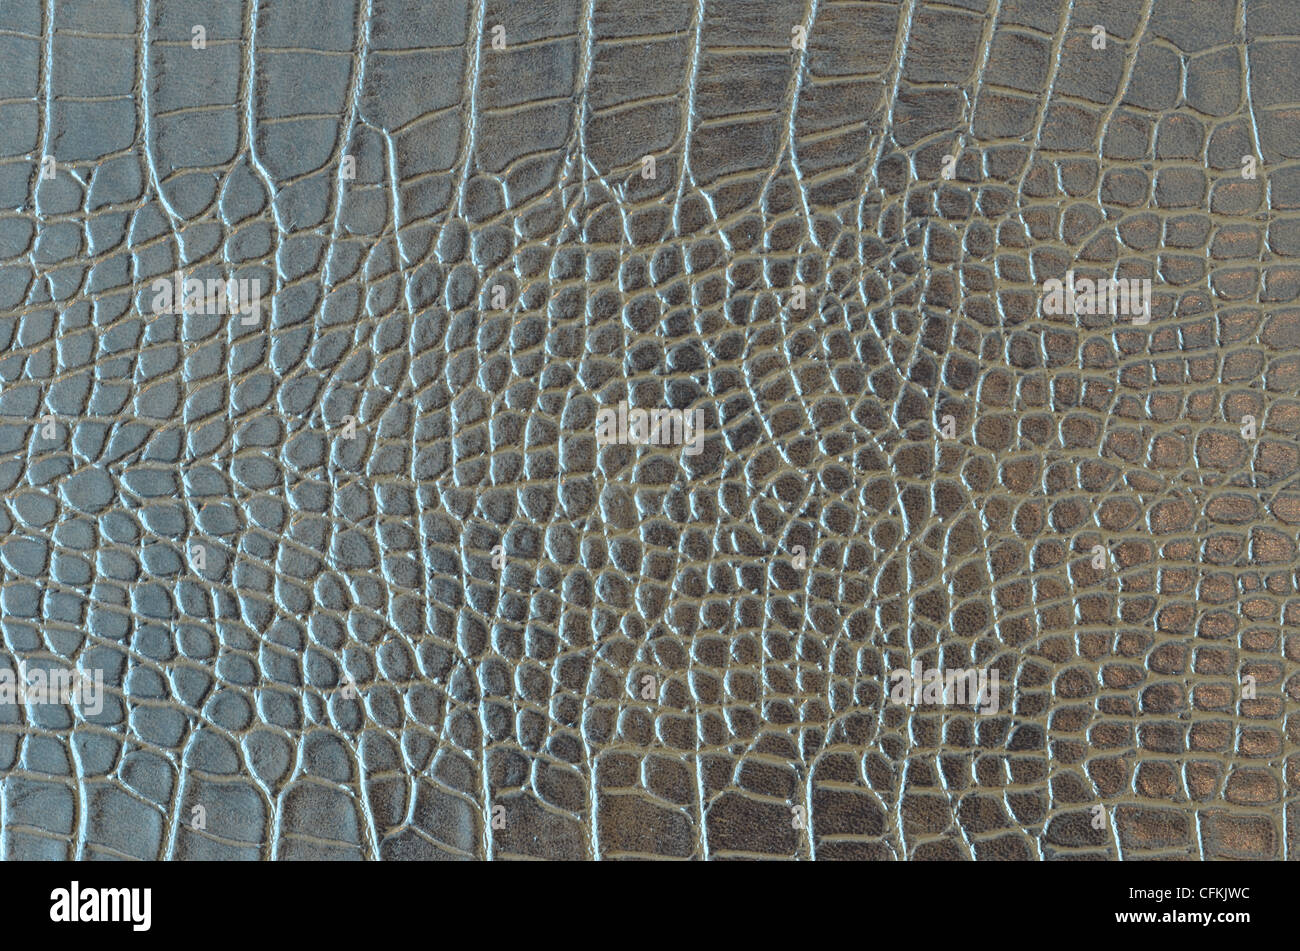 Alligator Skin Texture Stock Images, Royalty-Free Images ...